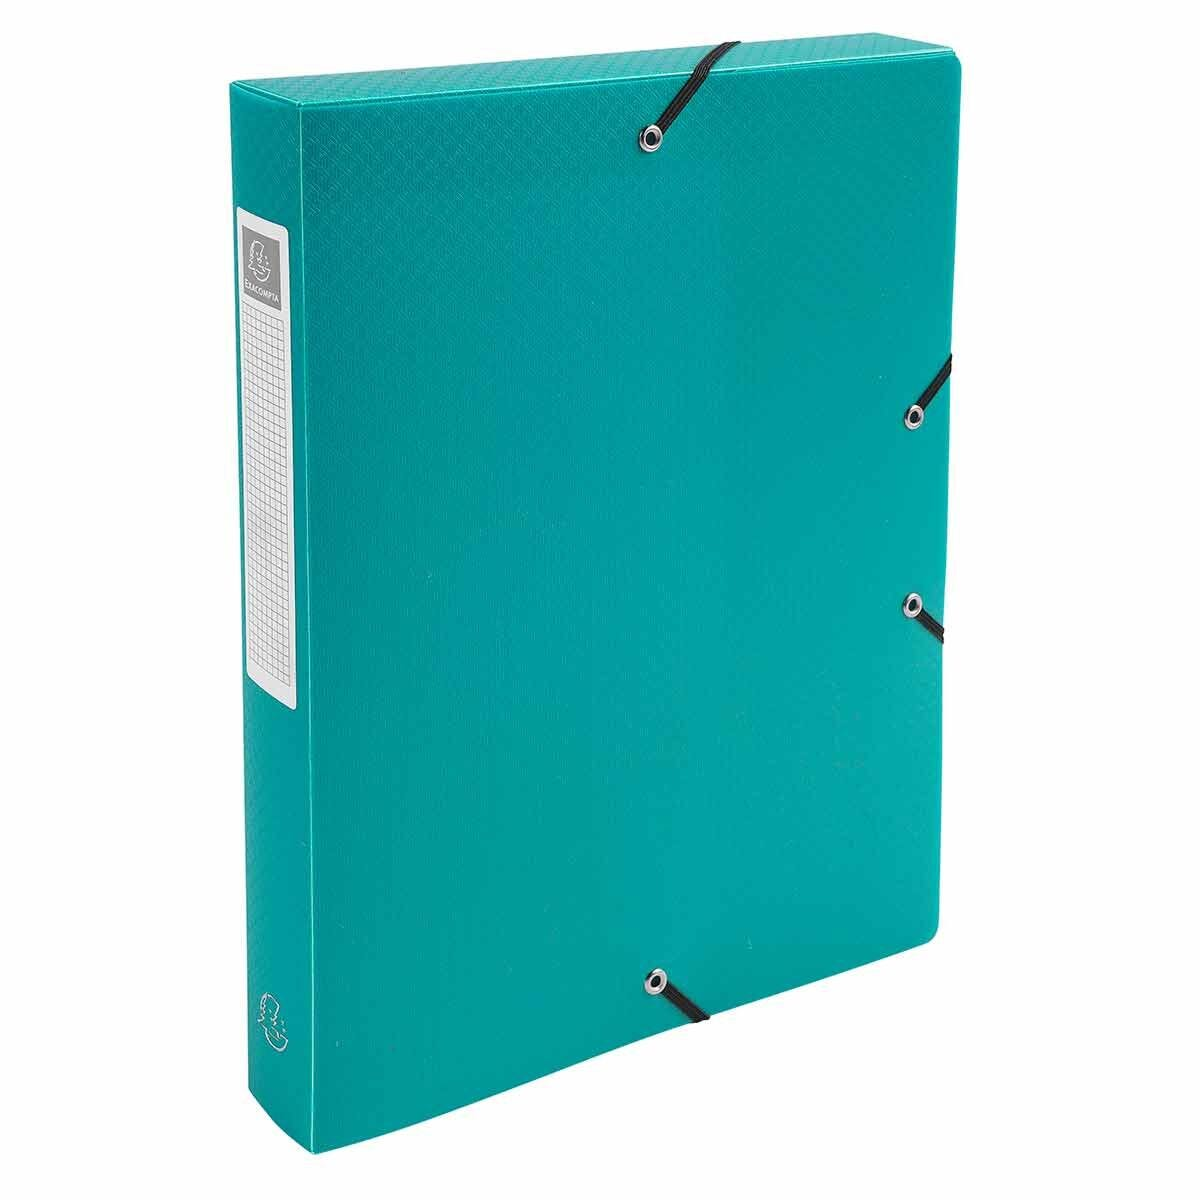 Exacompta Elasticated Polypropylene Box File A4 40mm Pack of 8 Green